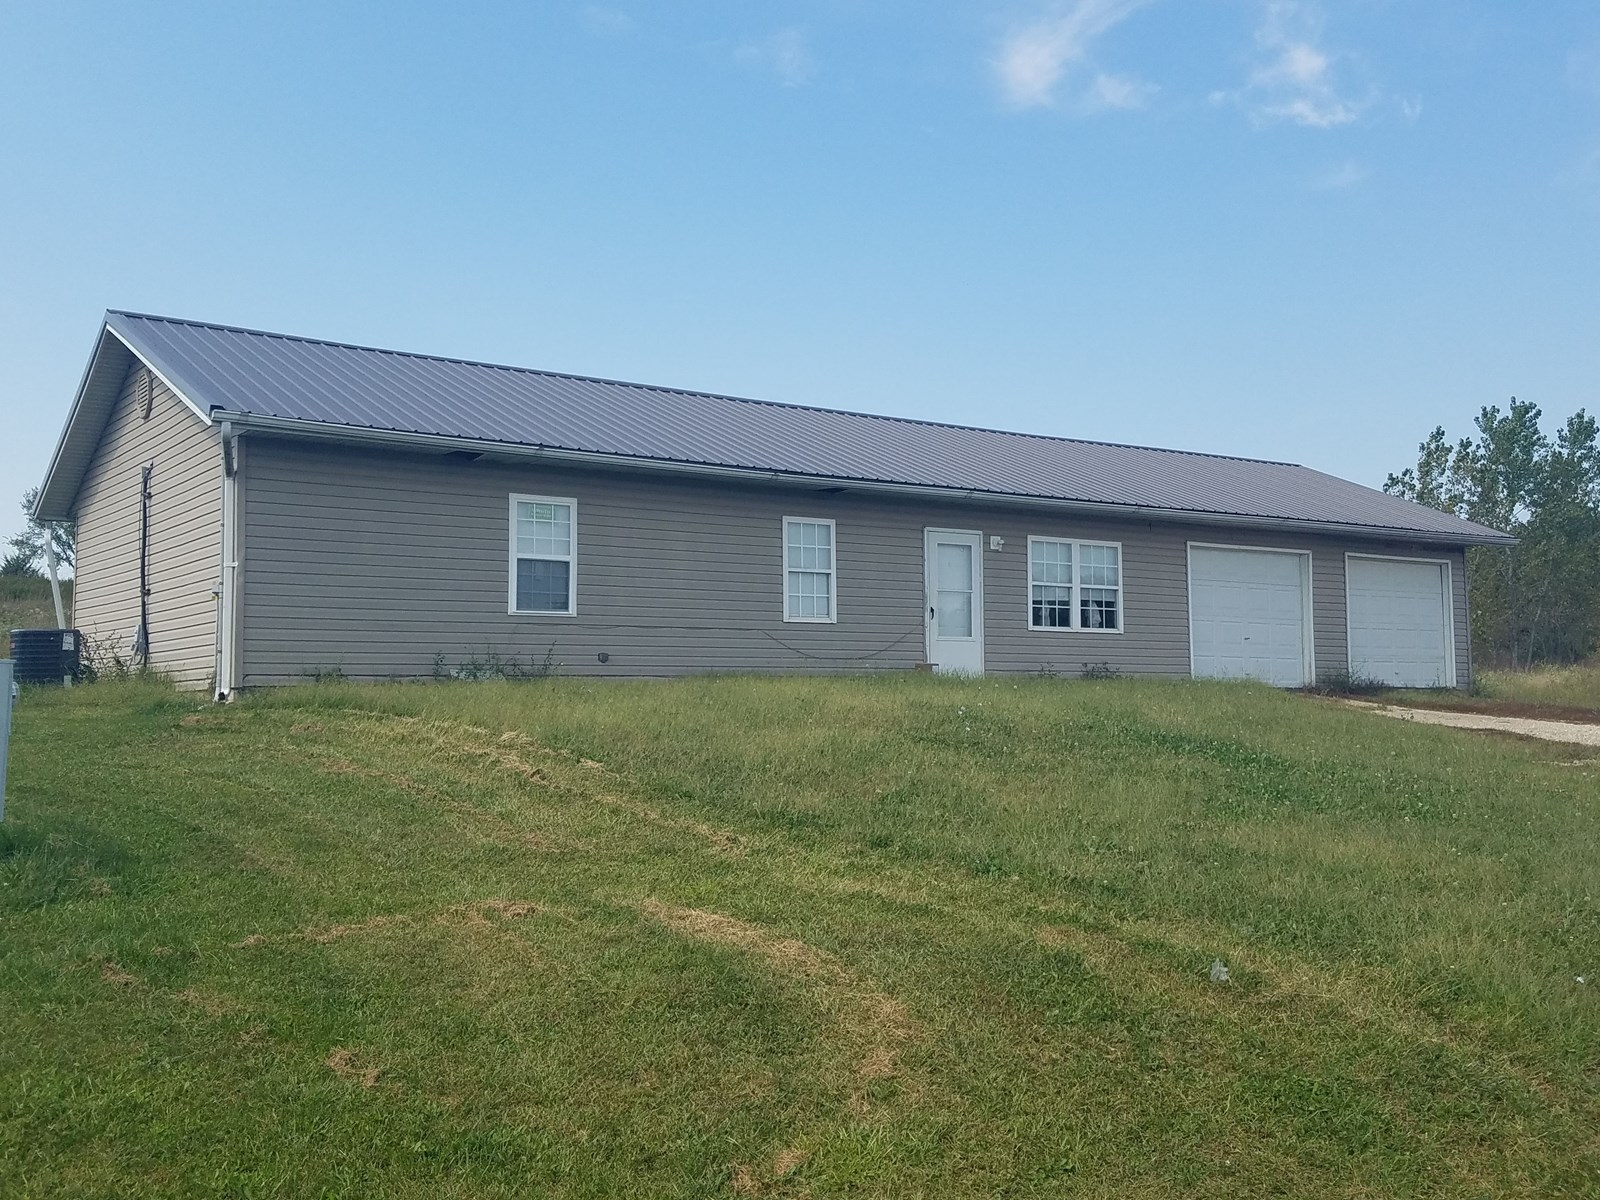 3 Bedroom 1 Bath House For Sale in Milan, MO